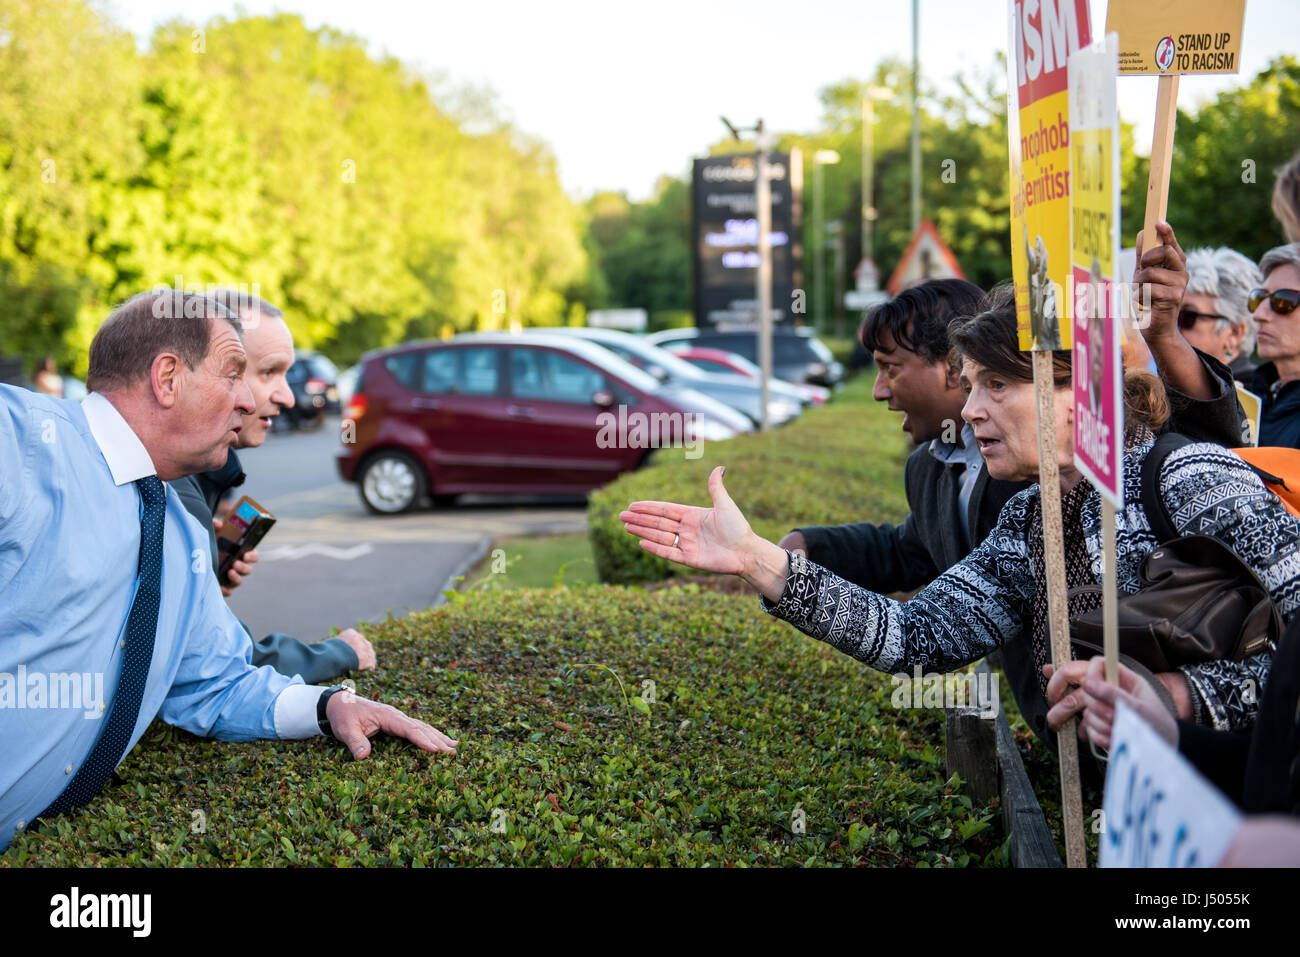 The Concorde Club, Eastleigh, Hampshire, United Kingdom. 14th May, 2017. Southampton Stand Up to Racism activists - Stock Image